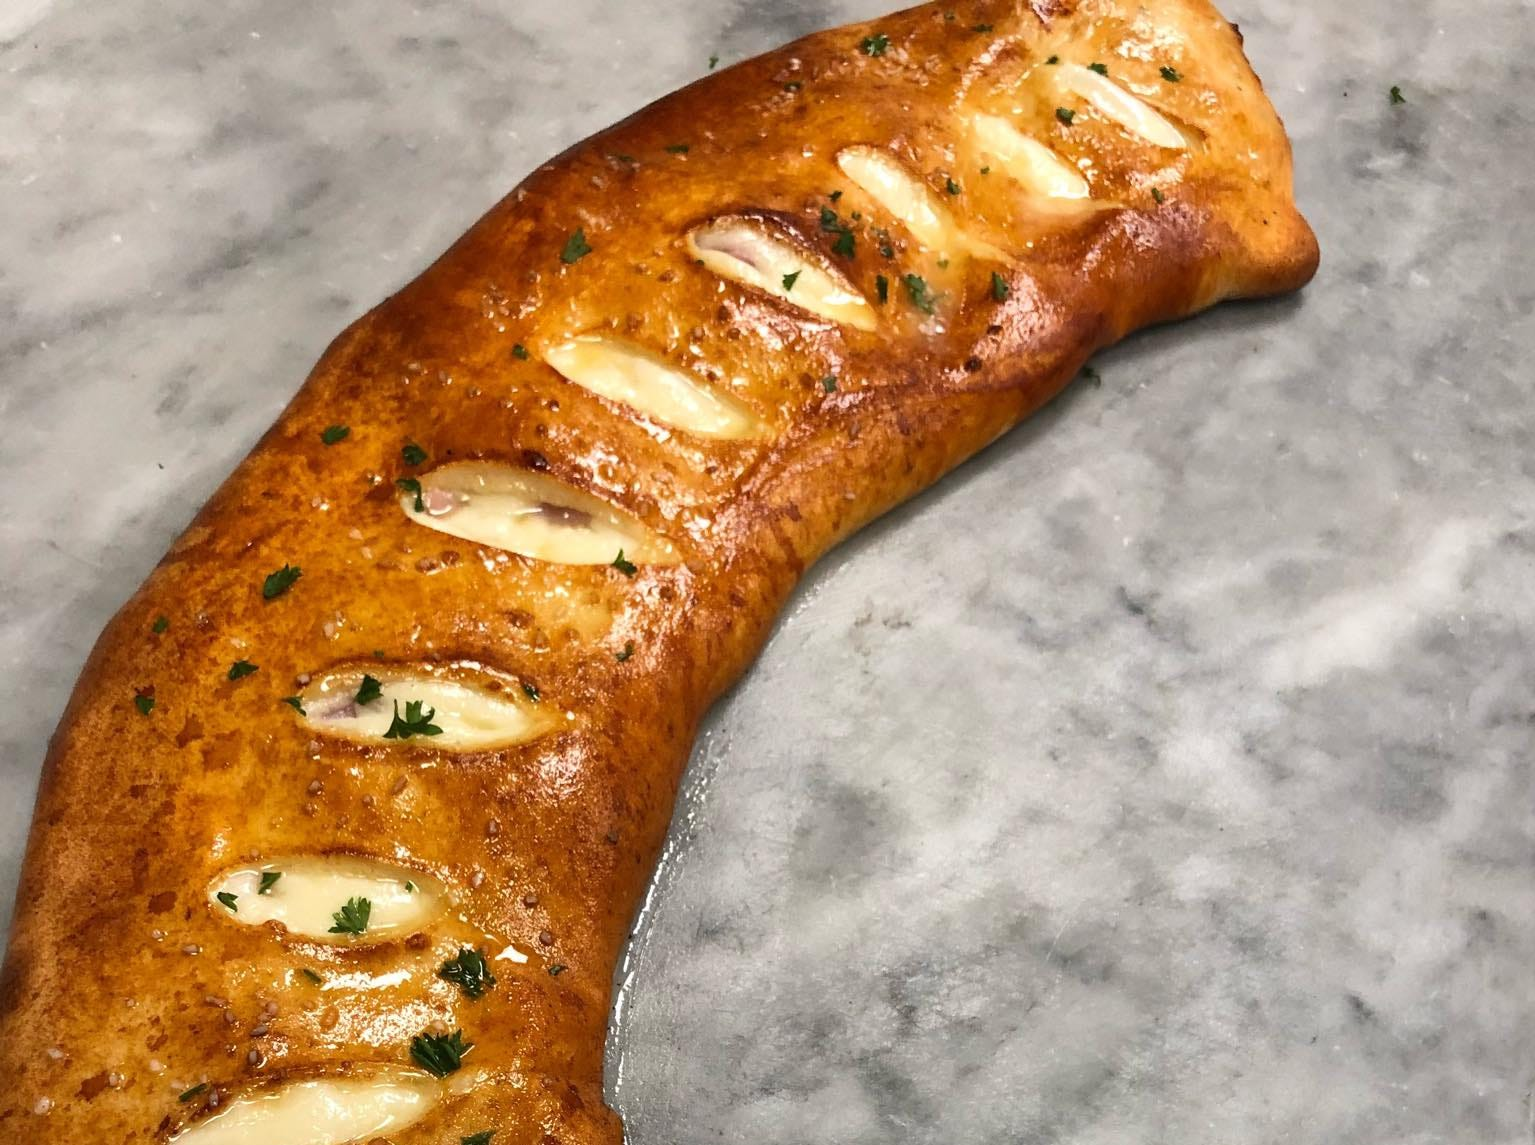 Located at 1 Center Square,  Divino Pizzeria & Grille makes Italian favorites as well as wings, subs and salads. Pictured here is their pretzel boli.